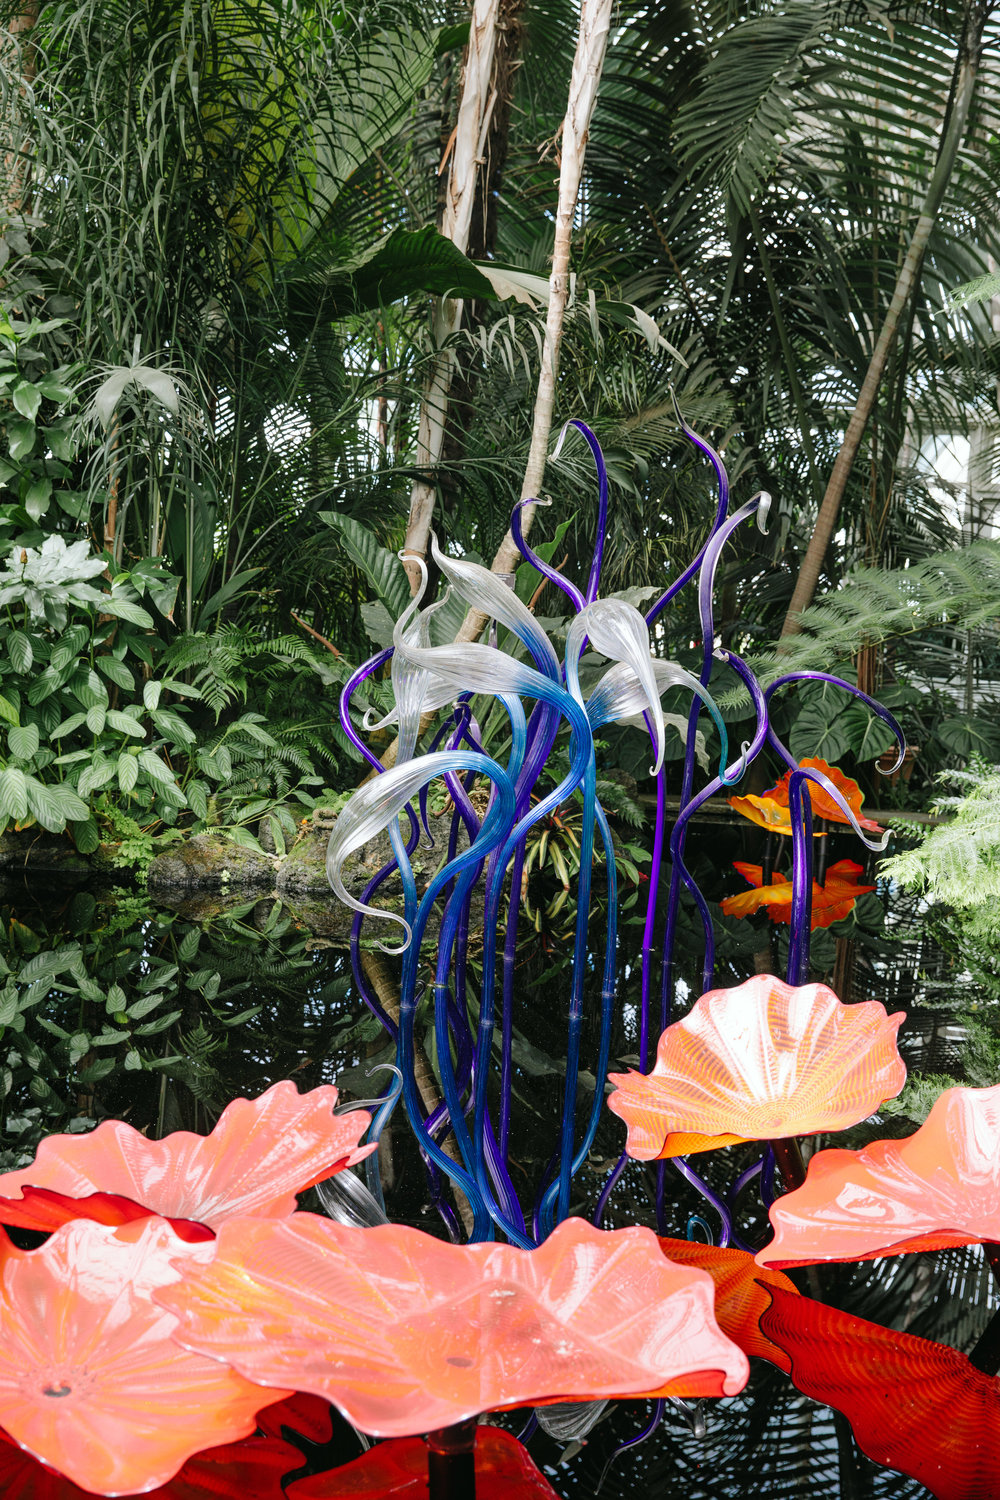 CHIHULY NY BOTANICAL GARDEN_BRIAN SAMUELS_AUGUST 2017-7403.jpg